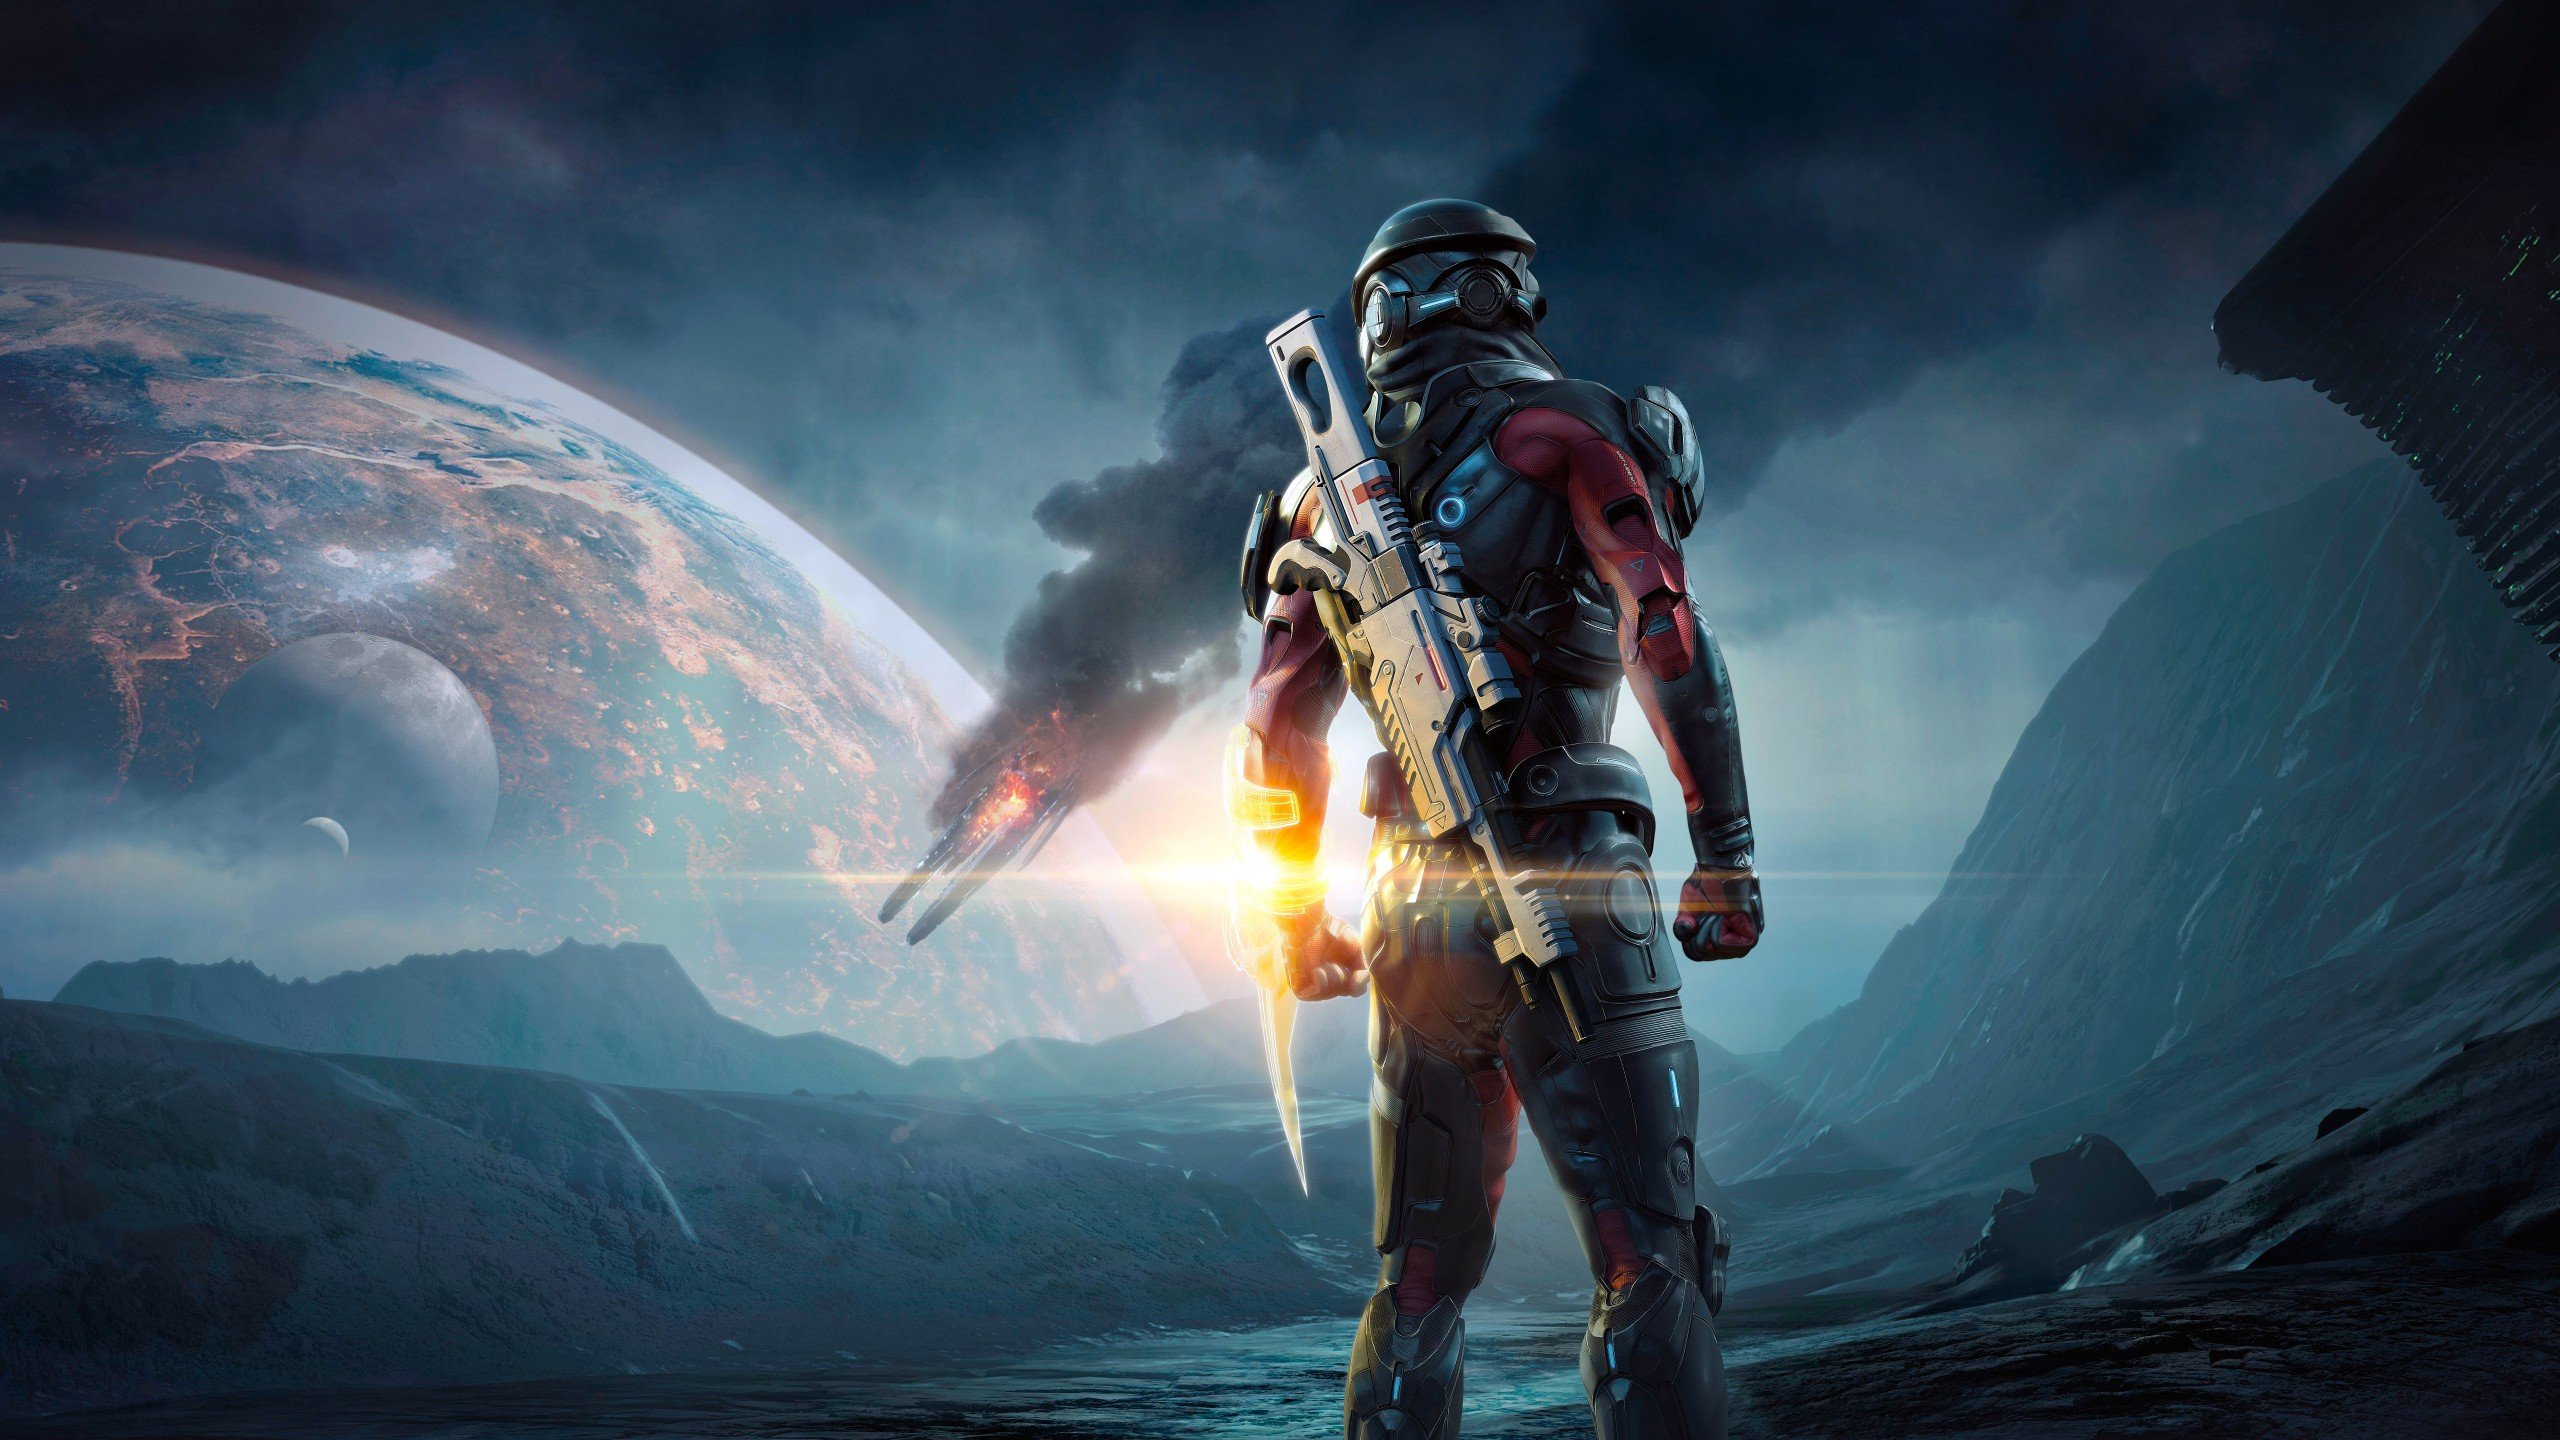 3d Cars Wallpapers For Windows 7 Mass Effect Andromeda 4k Wallpapers Hd Wallpapers Id